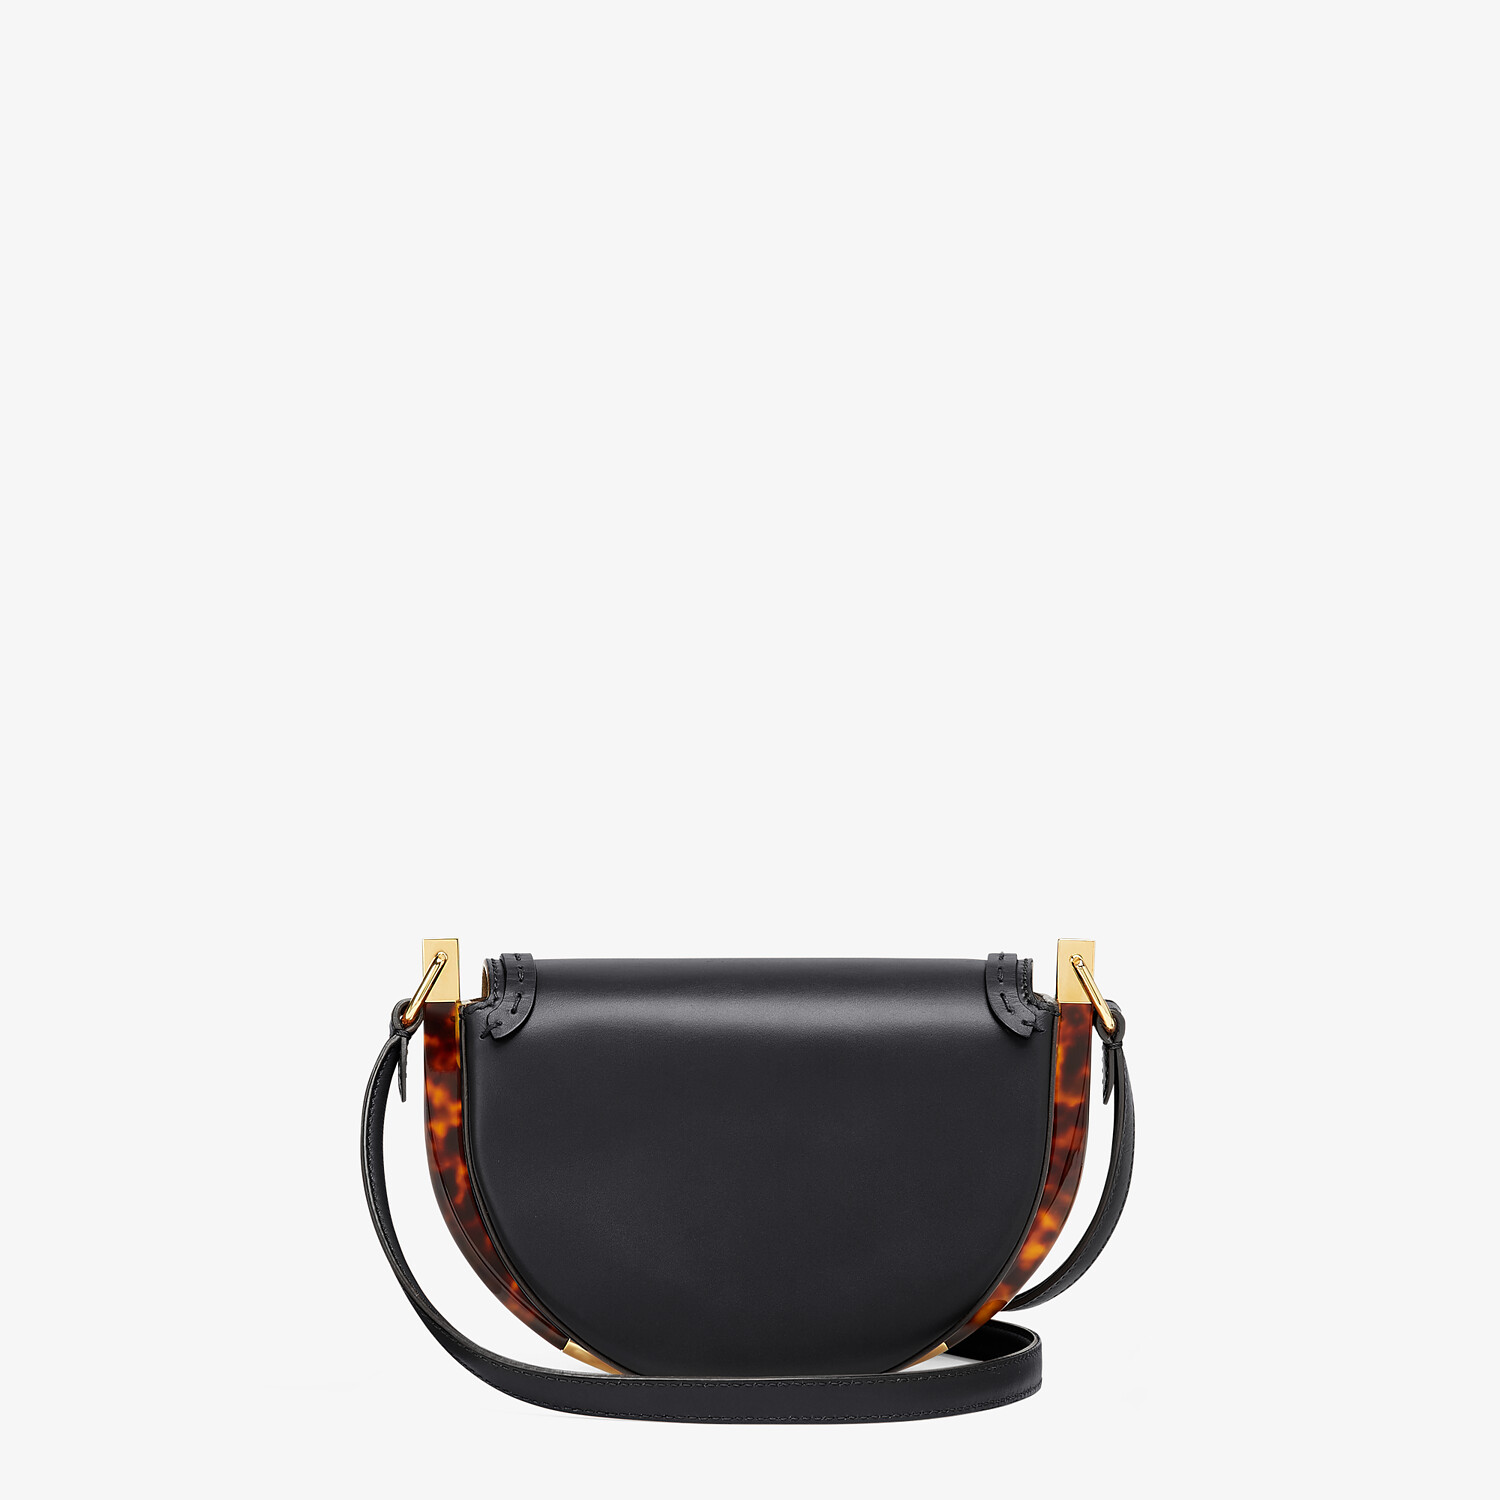 FENDI MOONLIGHT - Black leather bag - view 4 detail